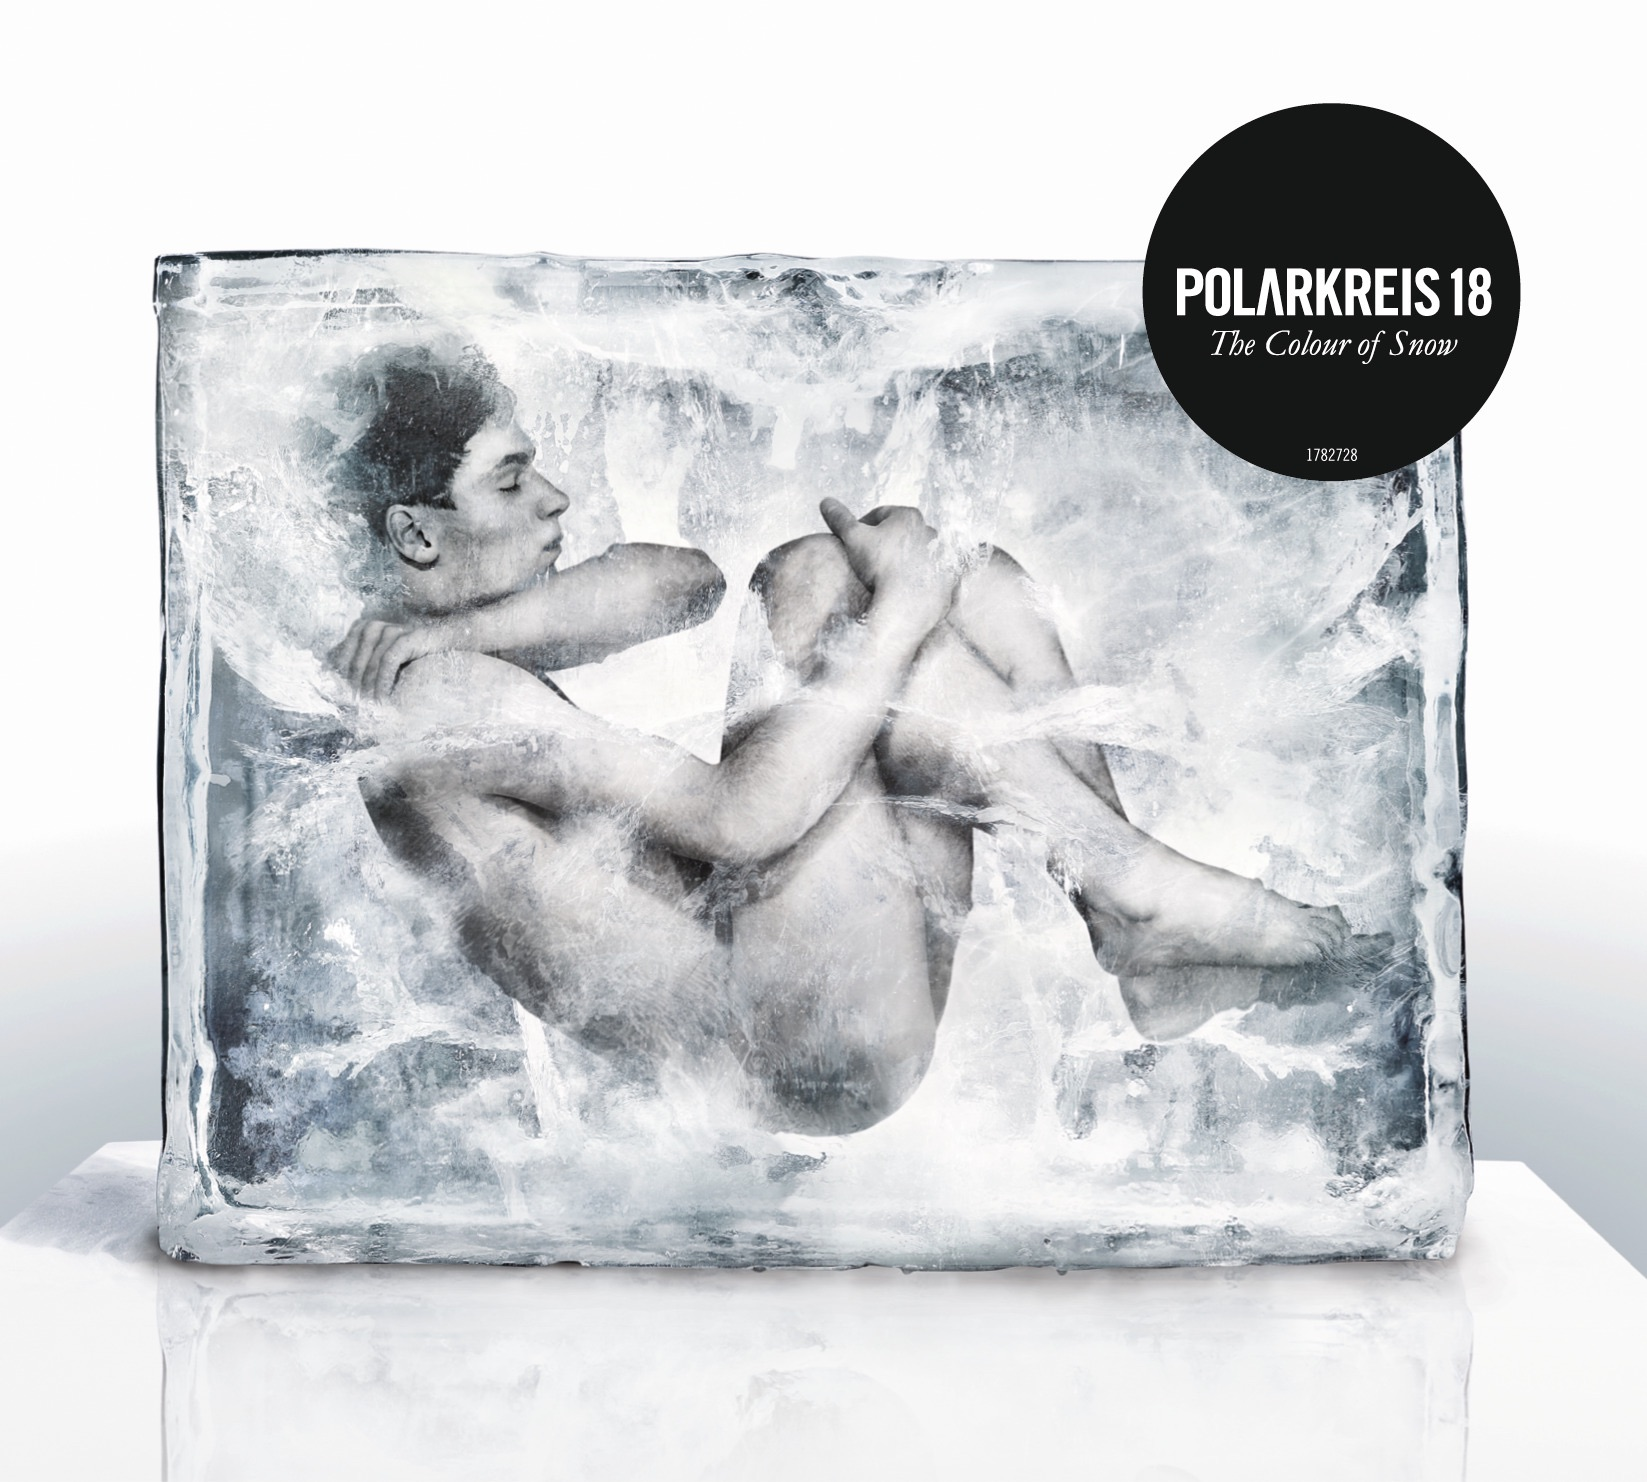 Polarkreis 18 album The Colour Of Snow